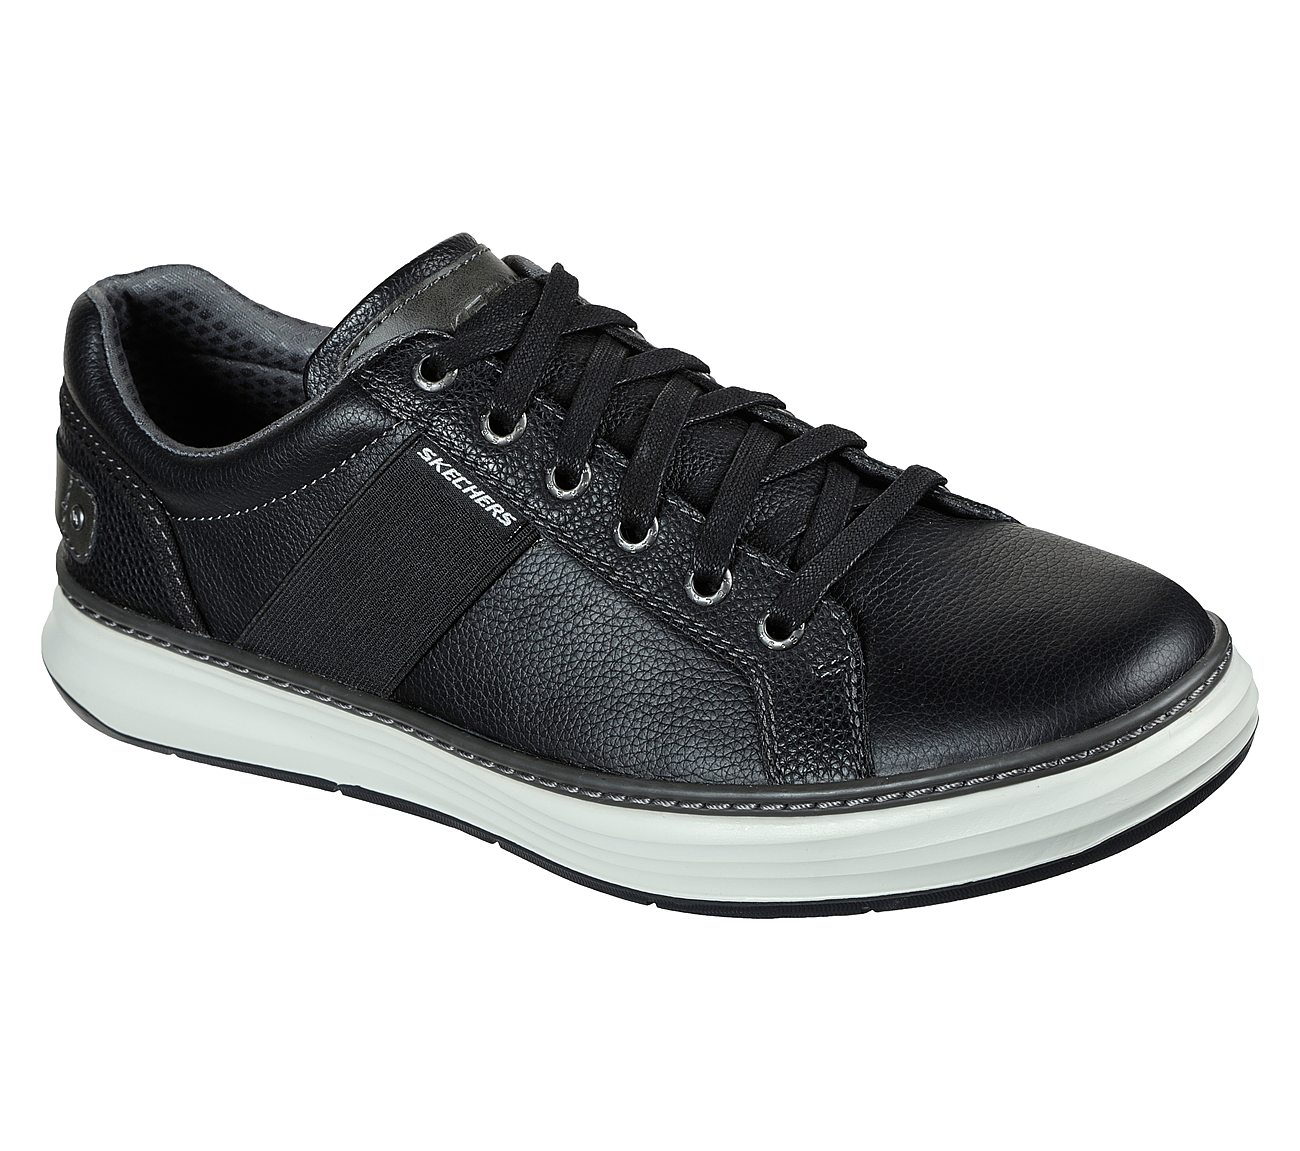 58a5f6e65b8d Buy SKECHERS Moreno - Winsor USA Casuals Shoes only  80.00